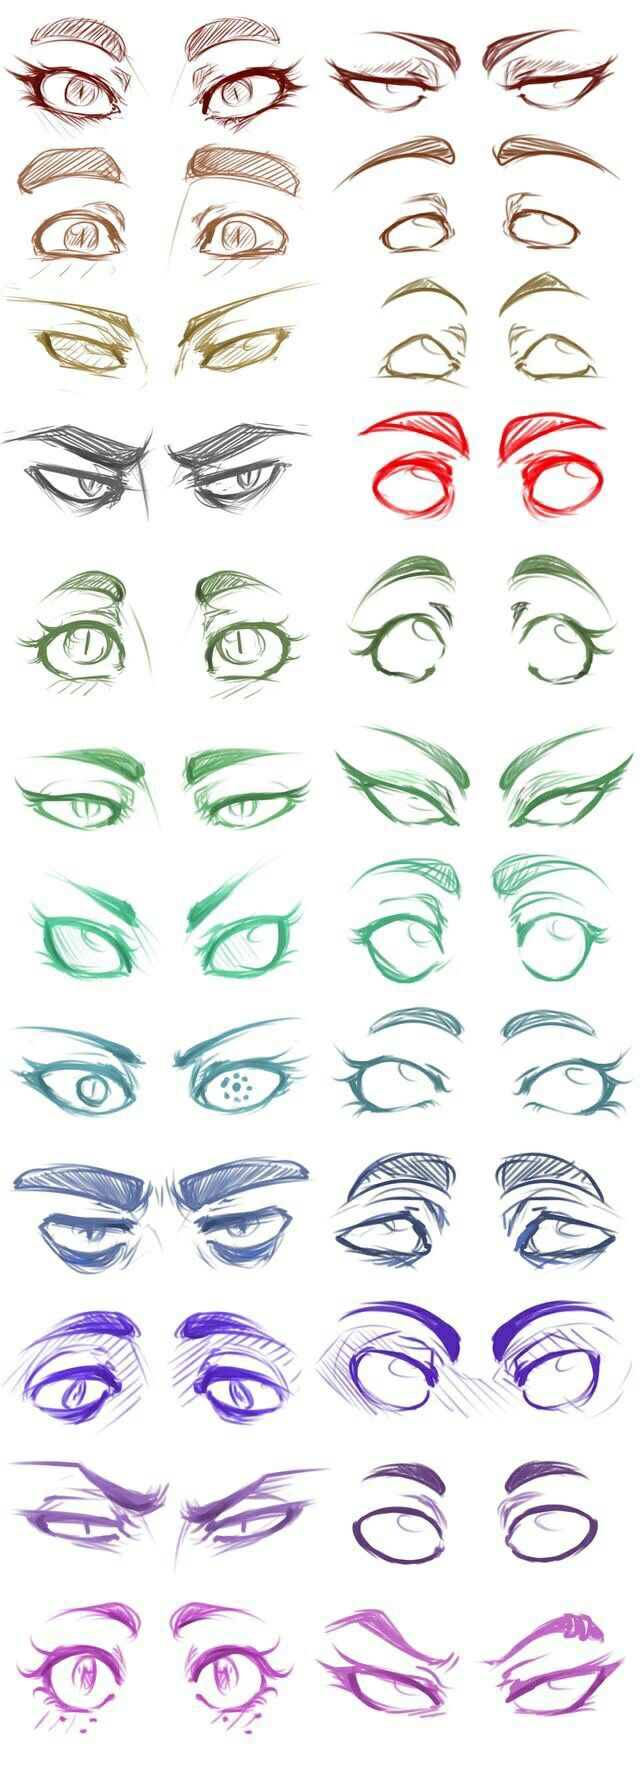 Homestuck Trolls// Beta's and Alpha's// Eye drawings